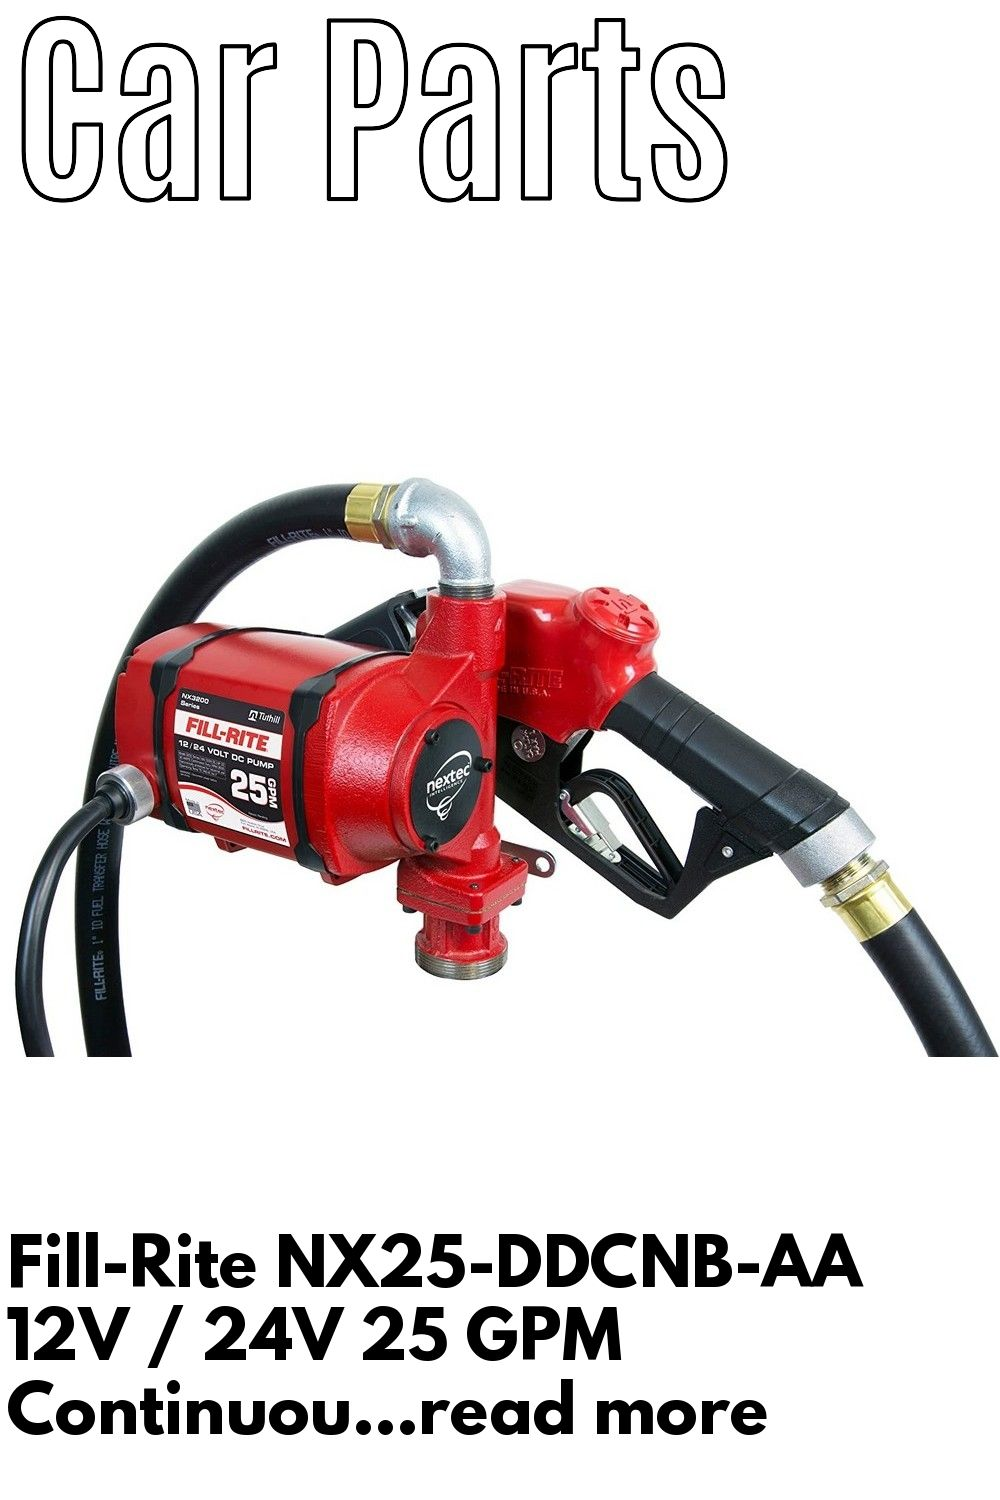 Fill Rite Nx25 Ddcnb Aa 12v 24v 25 Gpm Continuous Duty Bung Mounted Fuel Transfer Pump W Disch Gpm Outdoor Power Equipment Fuel